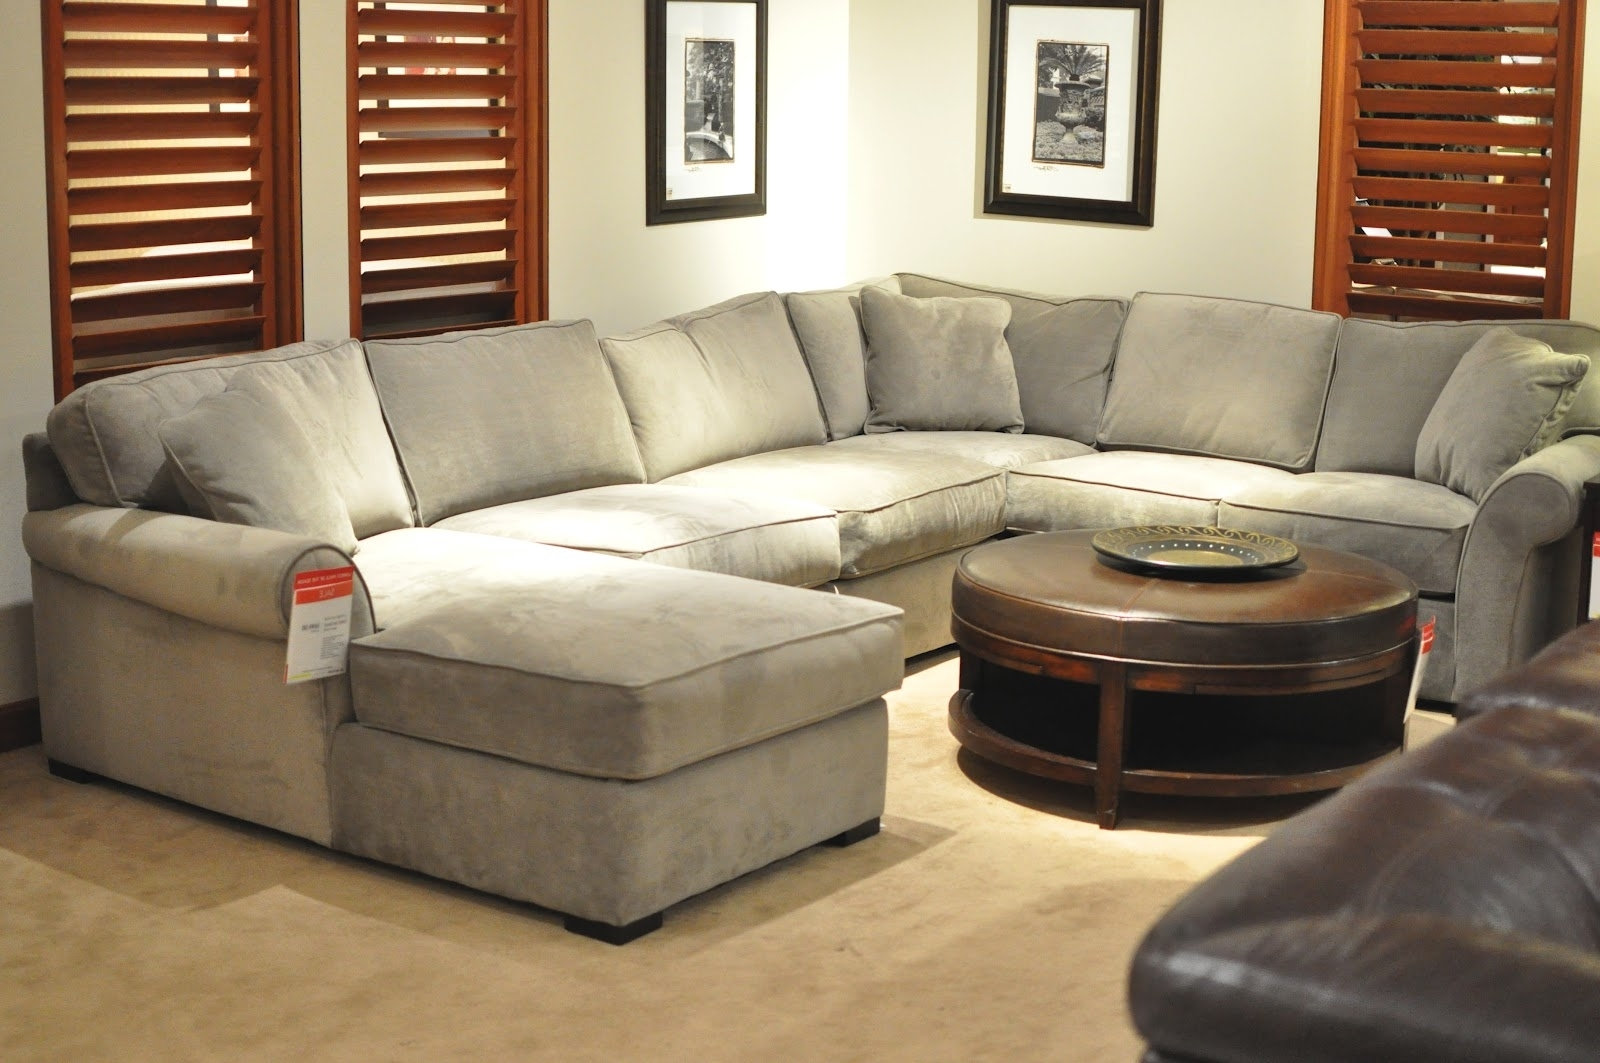 Newest Not So Newlywed Mcgees: Shopping For A Sectional Inside Phoenix Sectional Sofas (View 6 of 20)